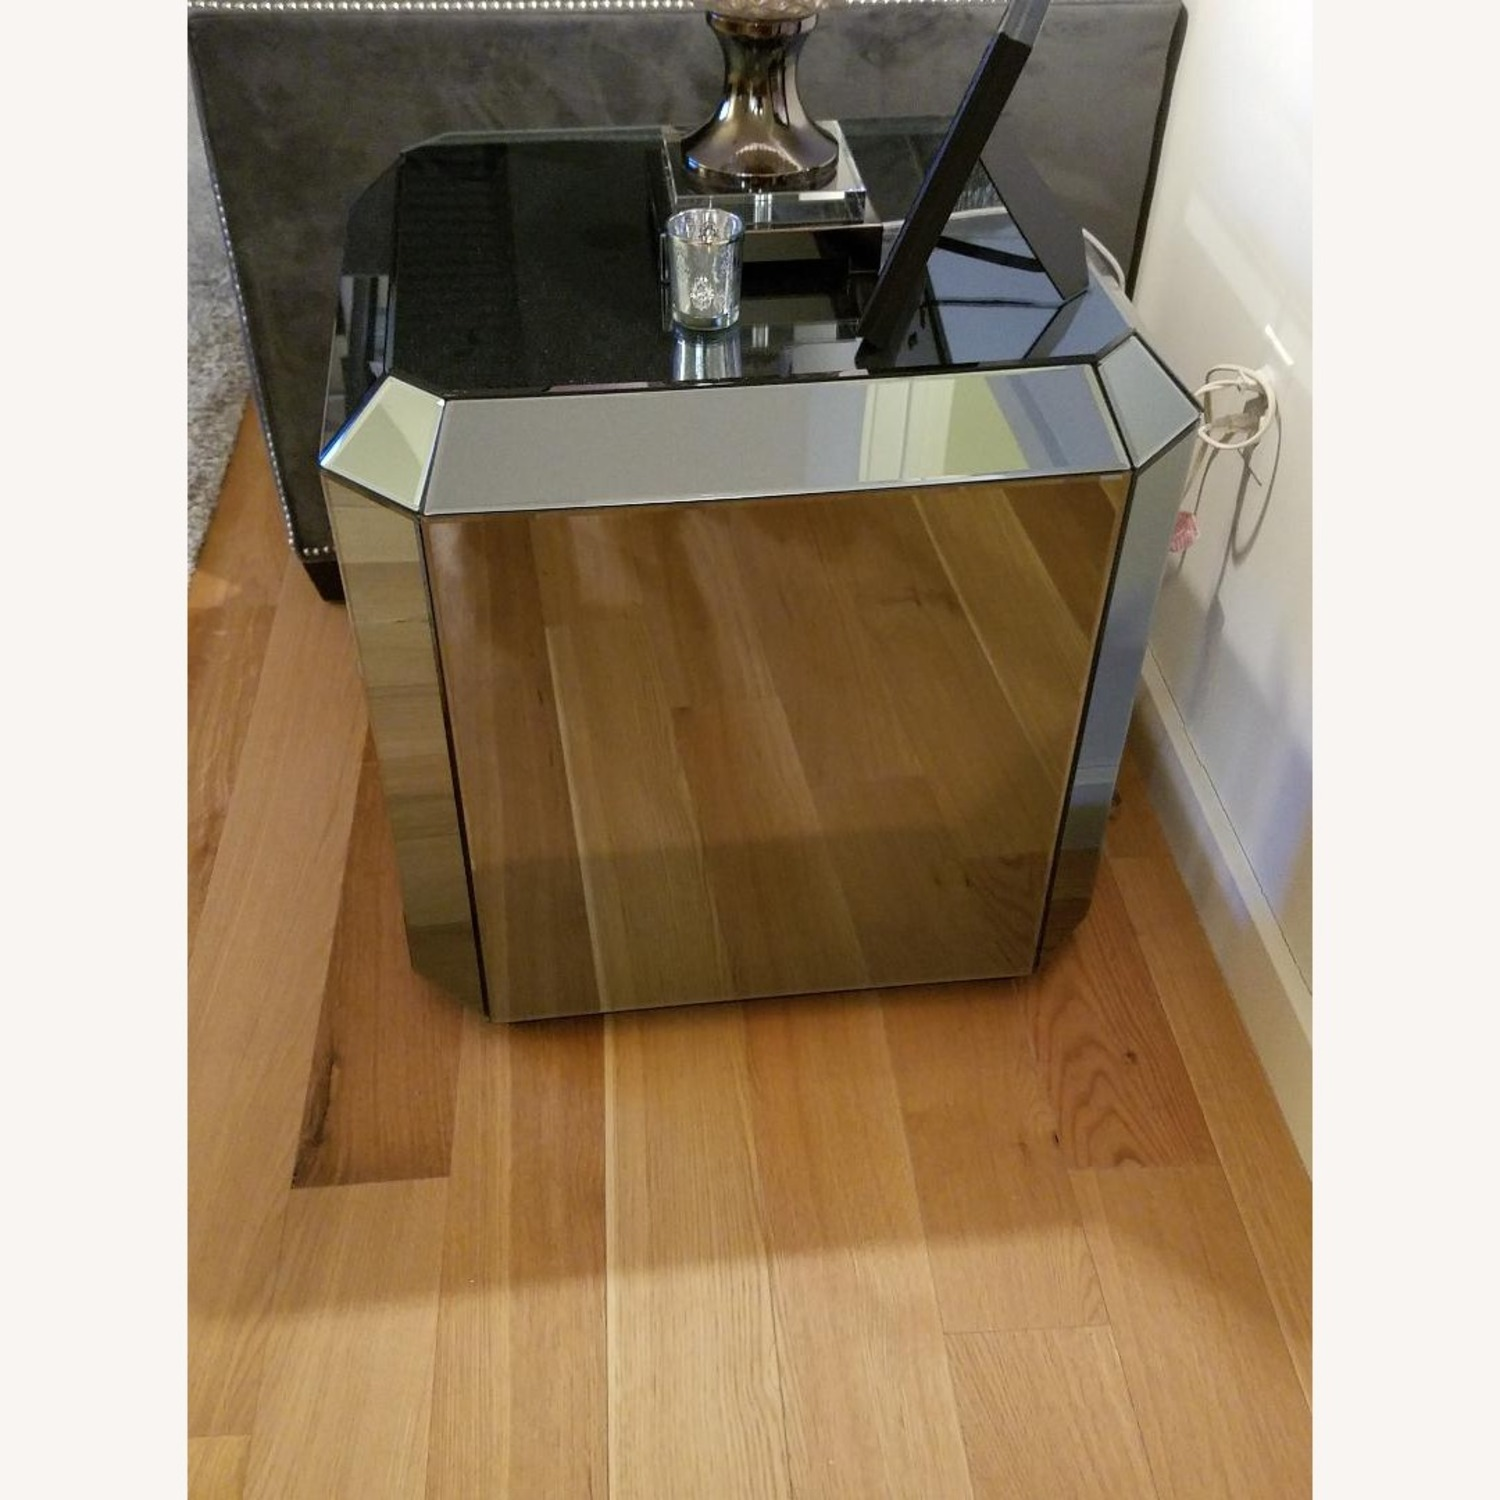 Mirrored End Tables - image-2